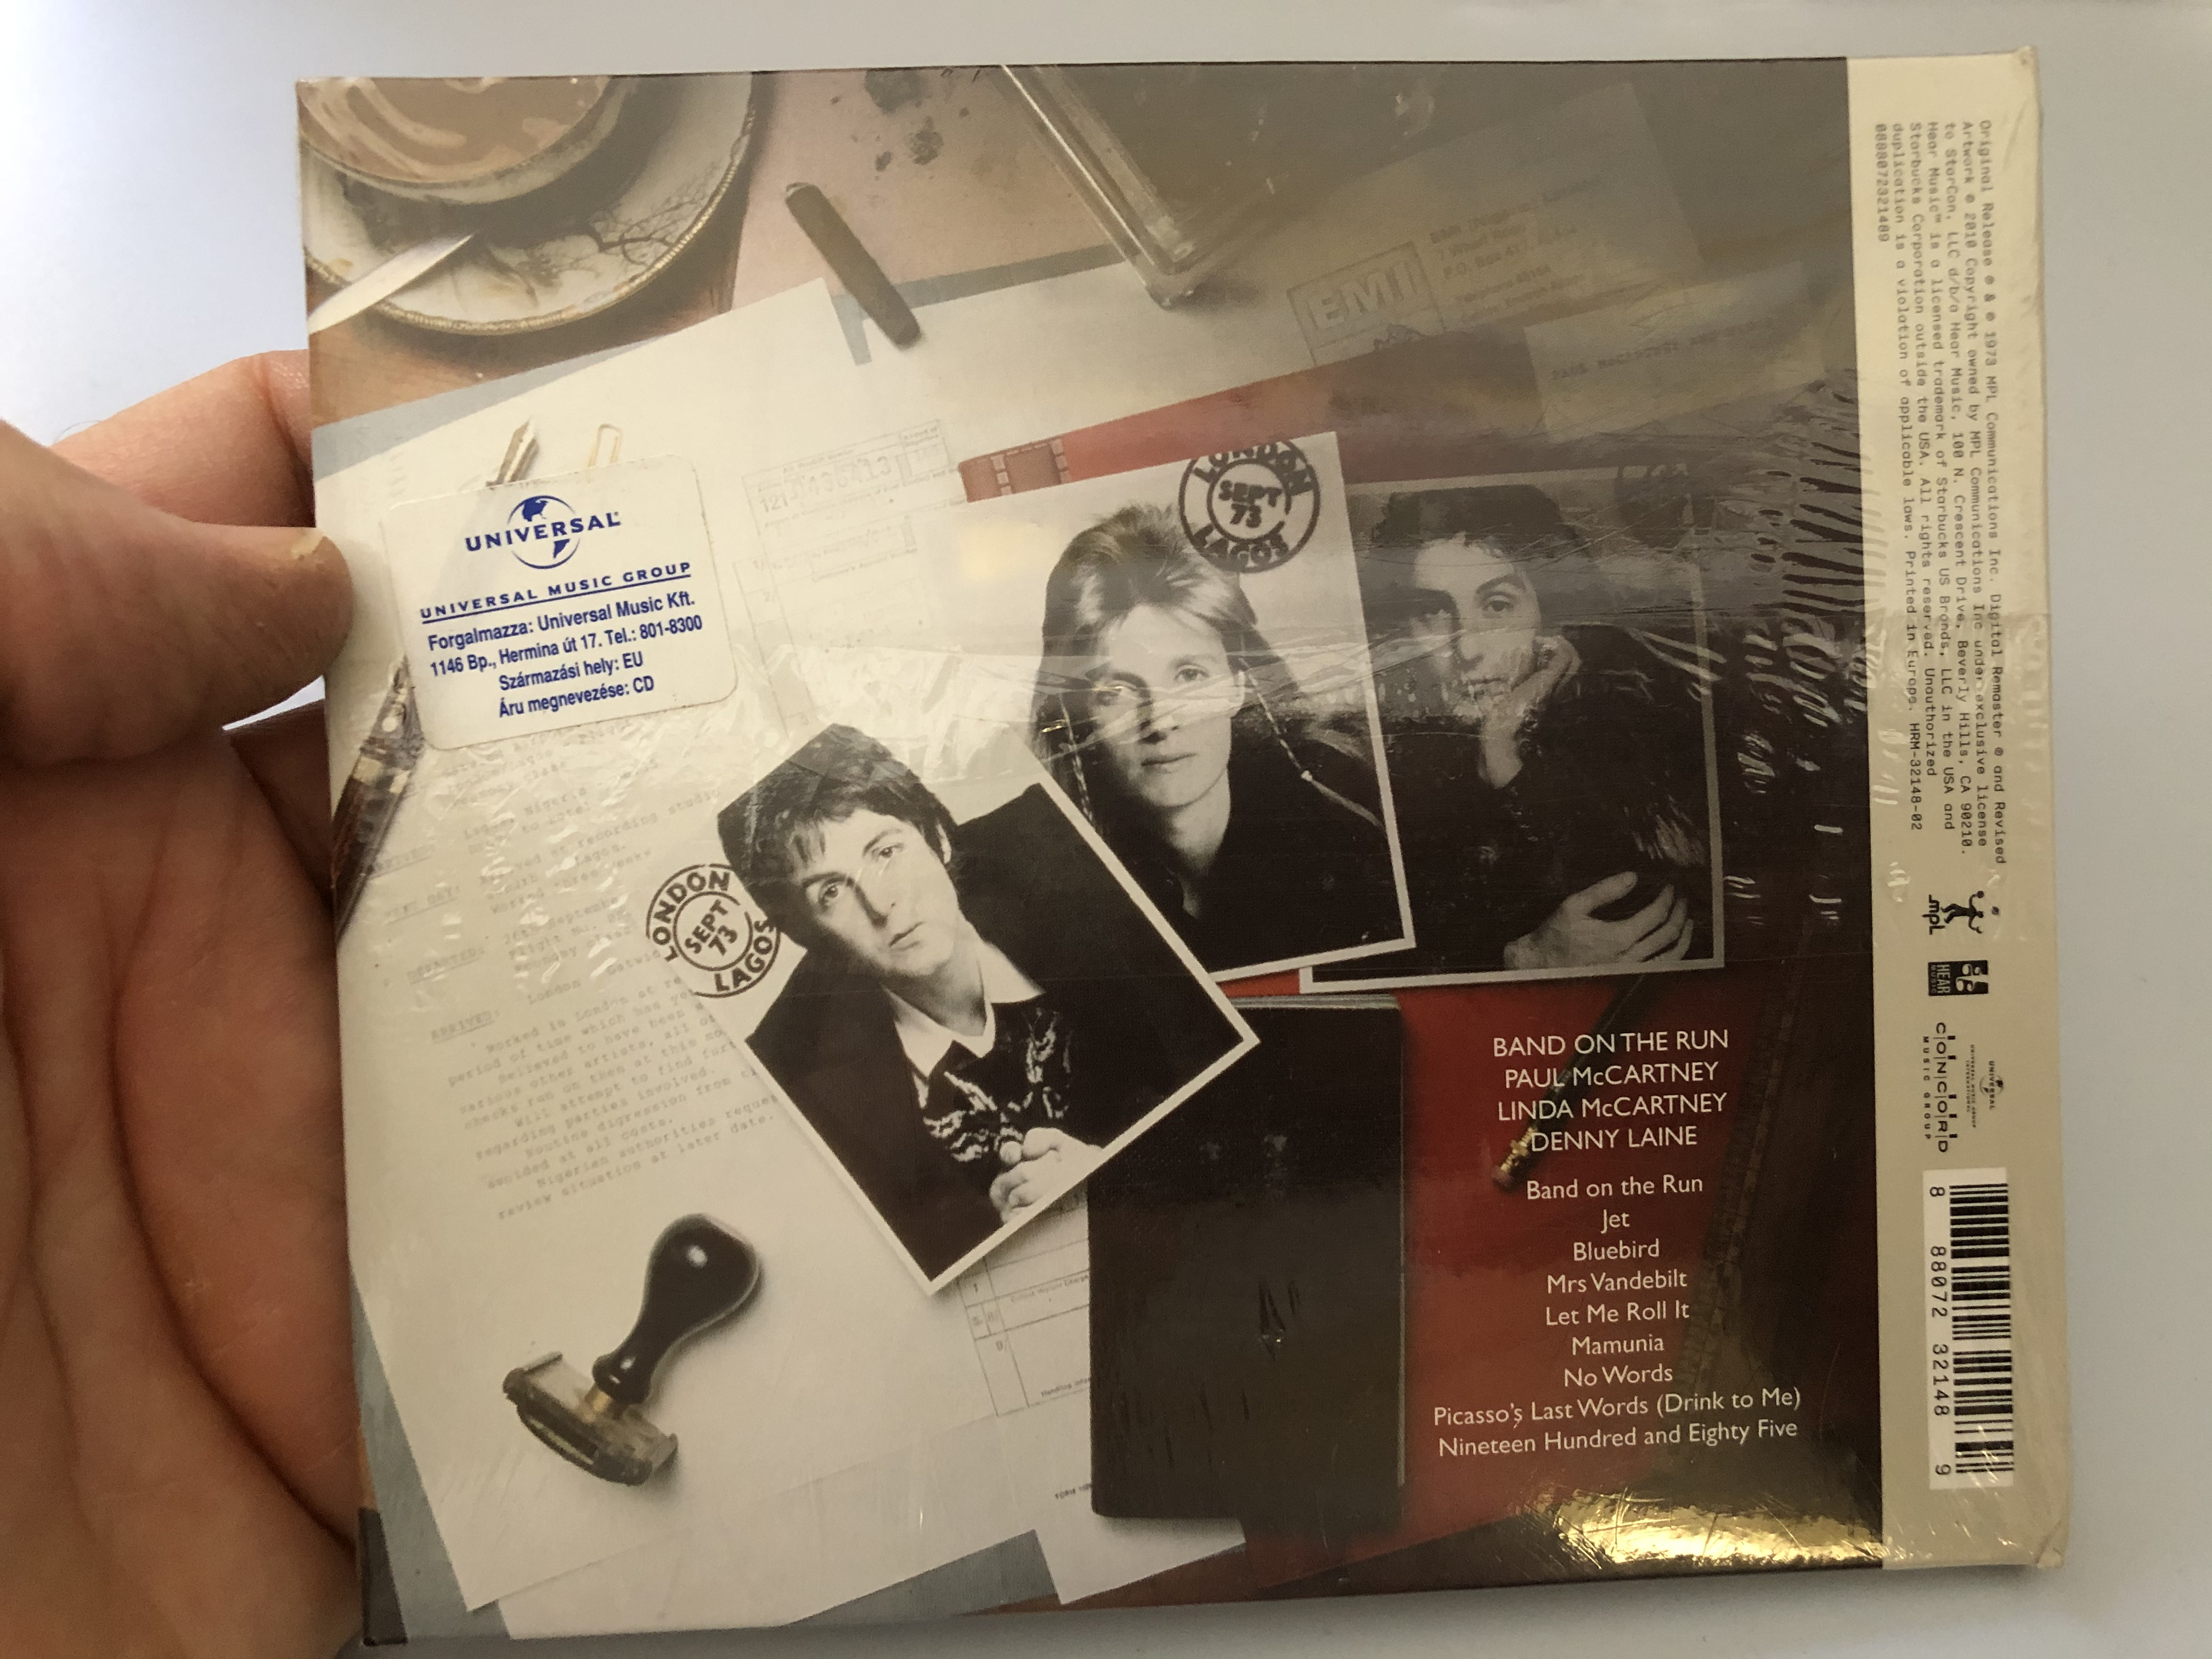 band-on-the-run-paul-mccartney-archive-collection-the-grammy-award-winning-paul-mccartney-wings-classic-newly-remastered-at-abbey-road-studios.-includes-band-on-the-run-and-jet-.jpg